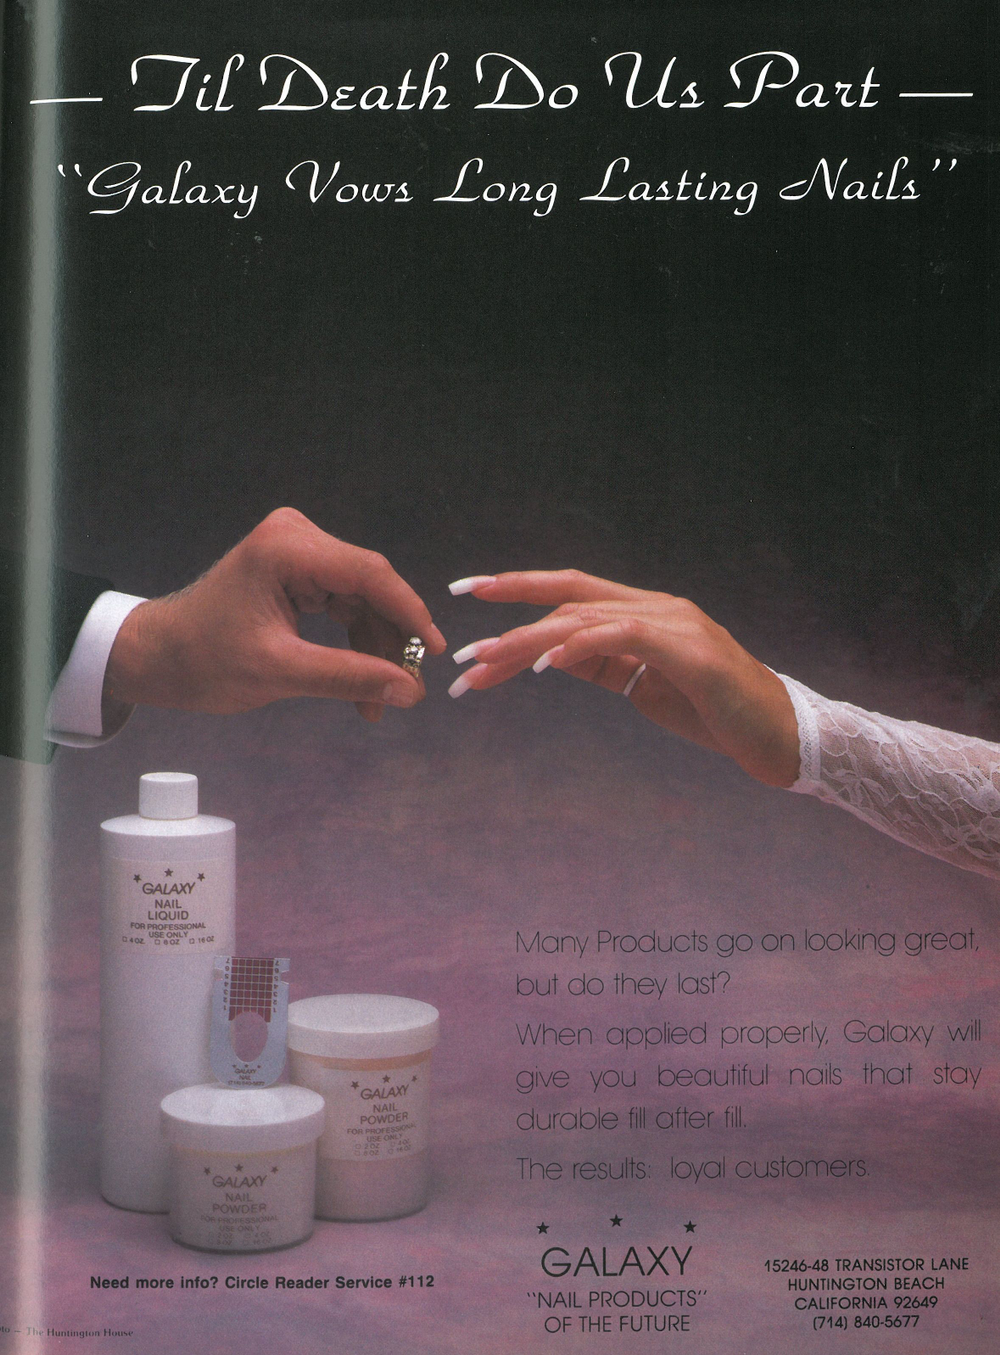 <p>Galaxy's first ad, which ran in NAILS in 1989.</p>